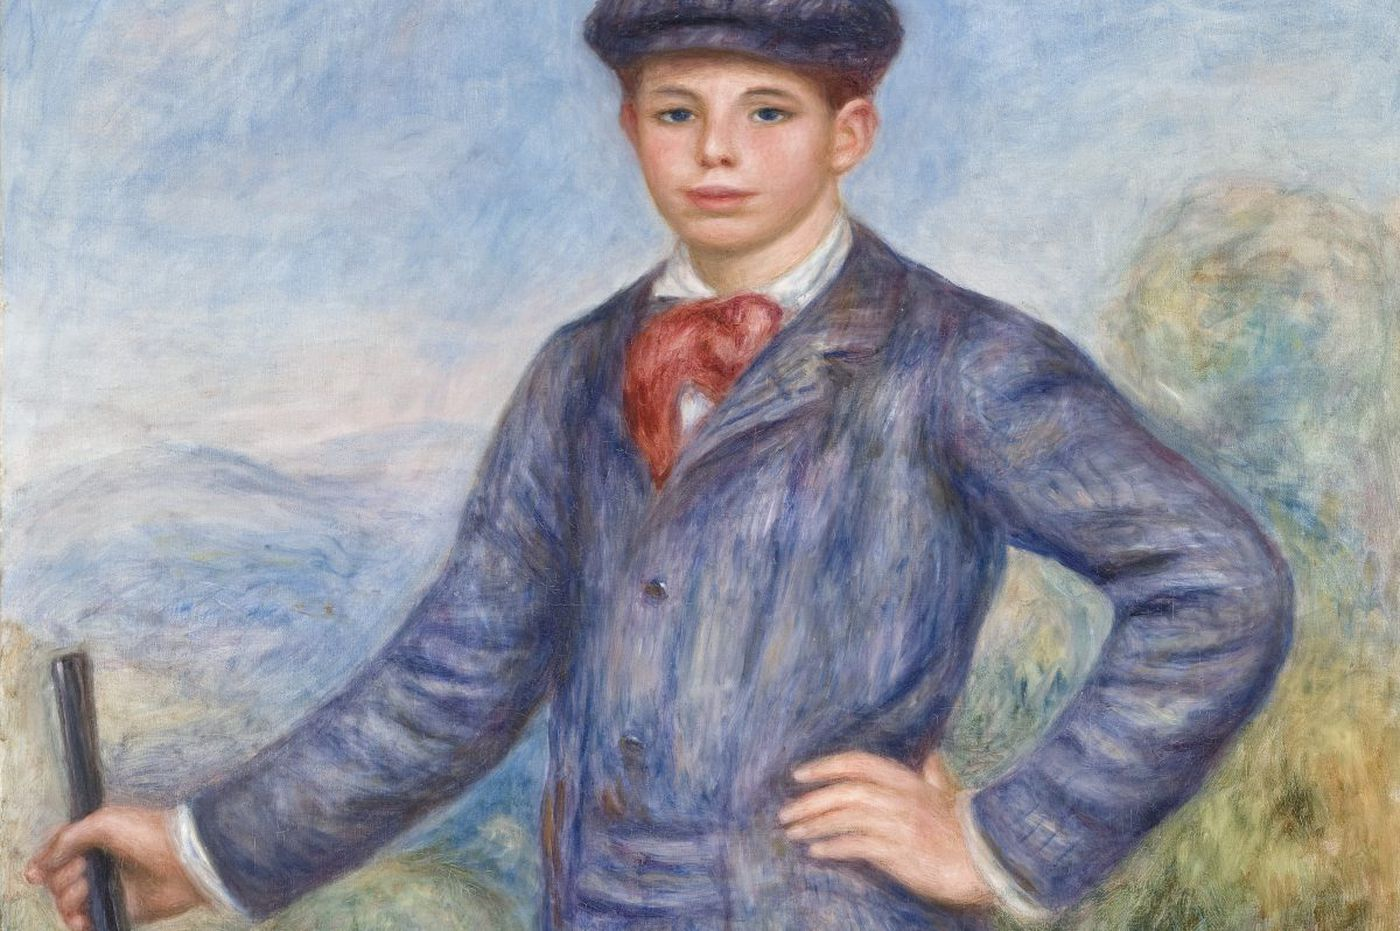 At Barnes, two Renoirs - father and son - share one show, diminishing the impact of both